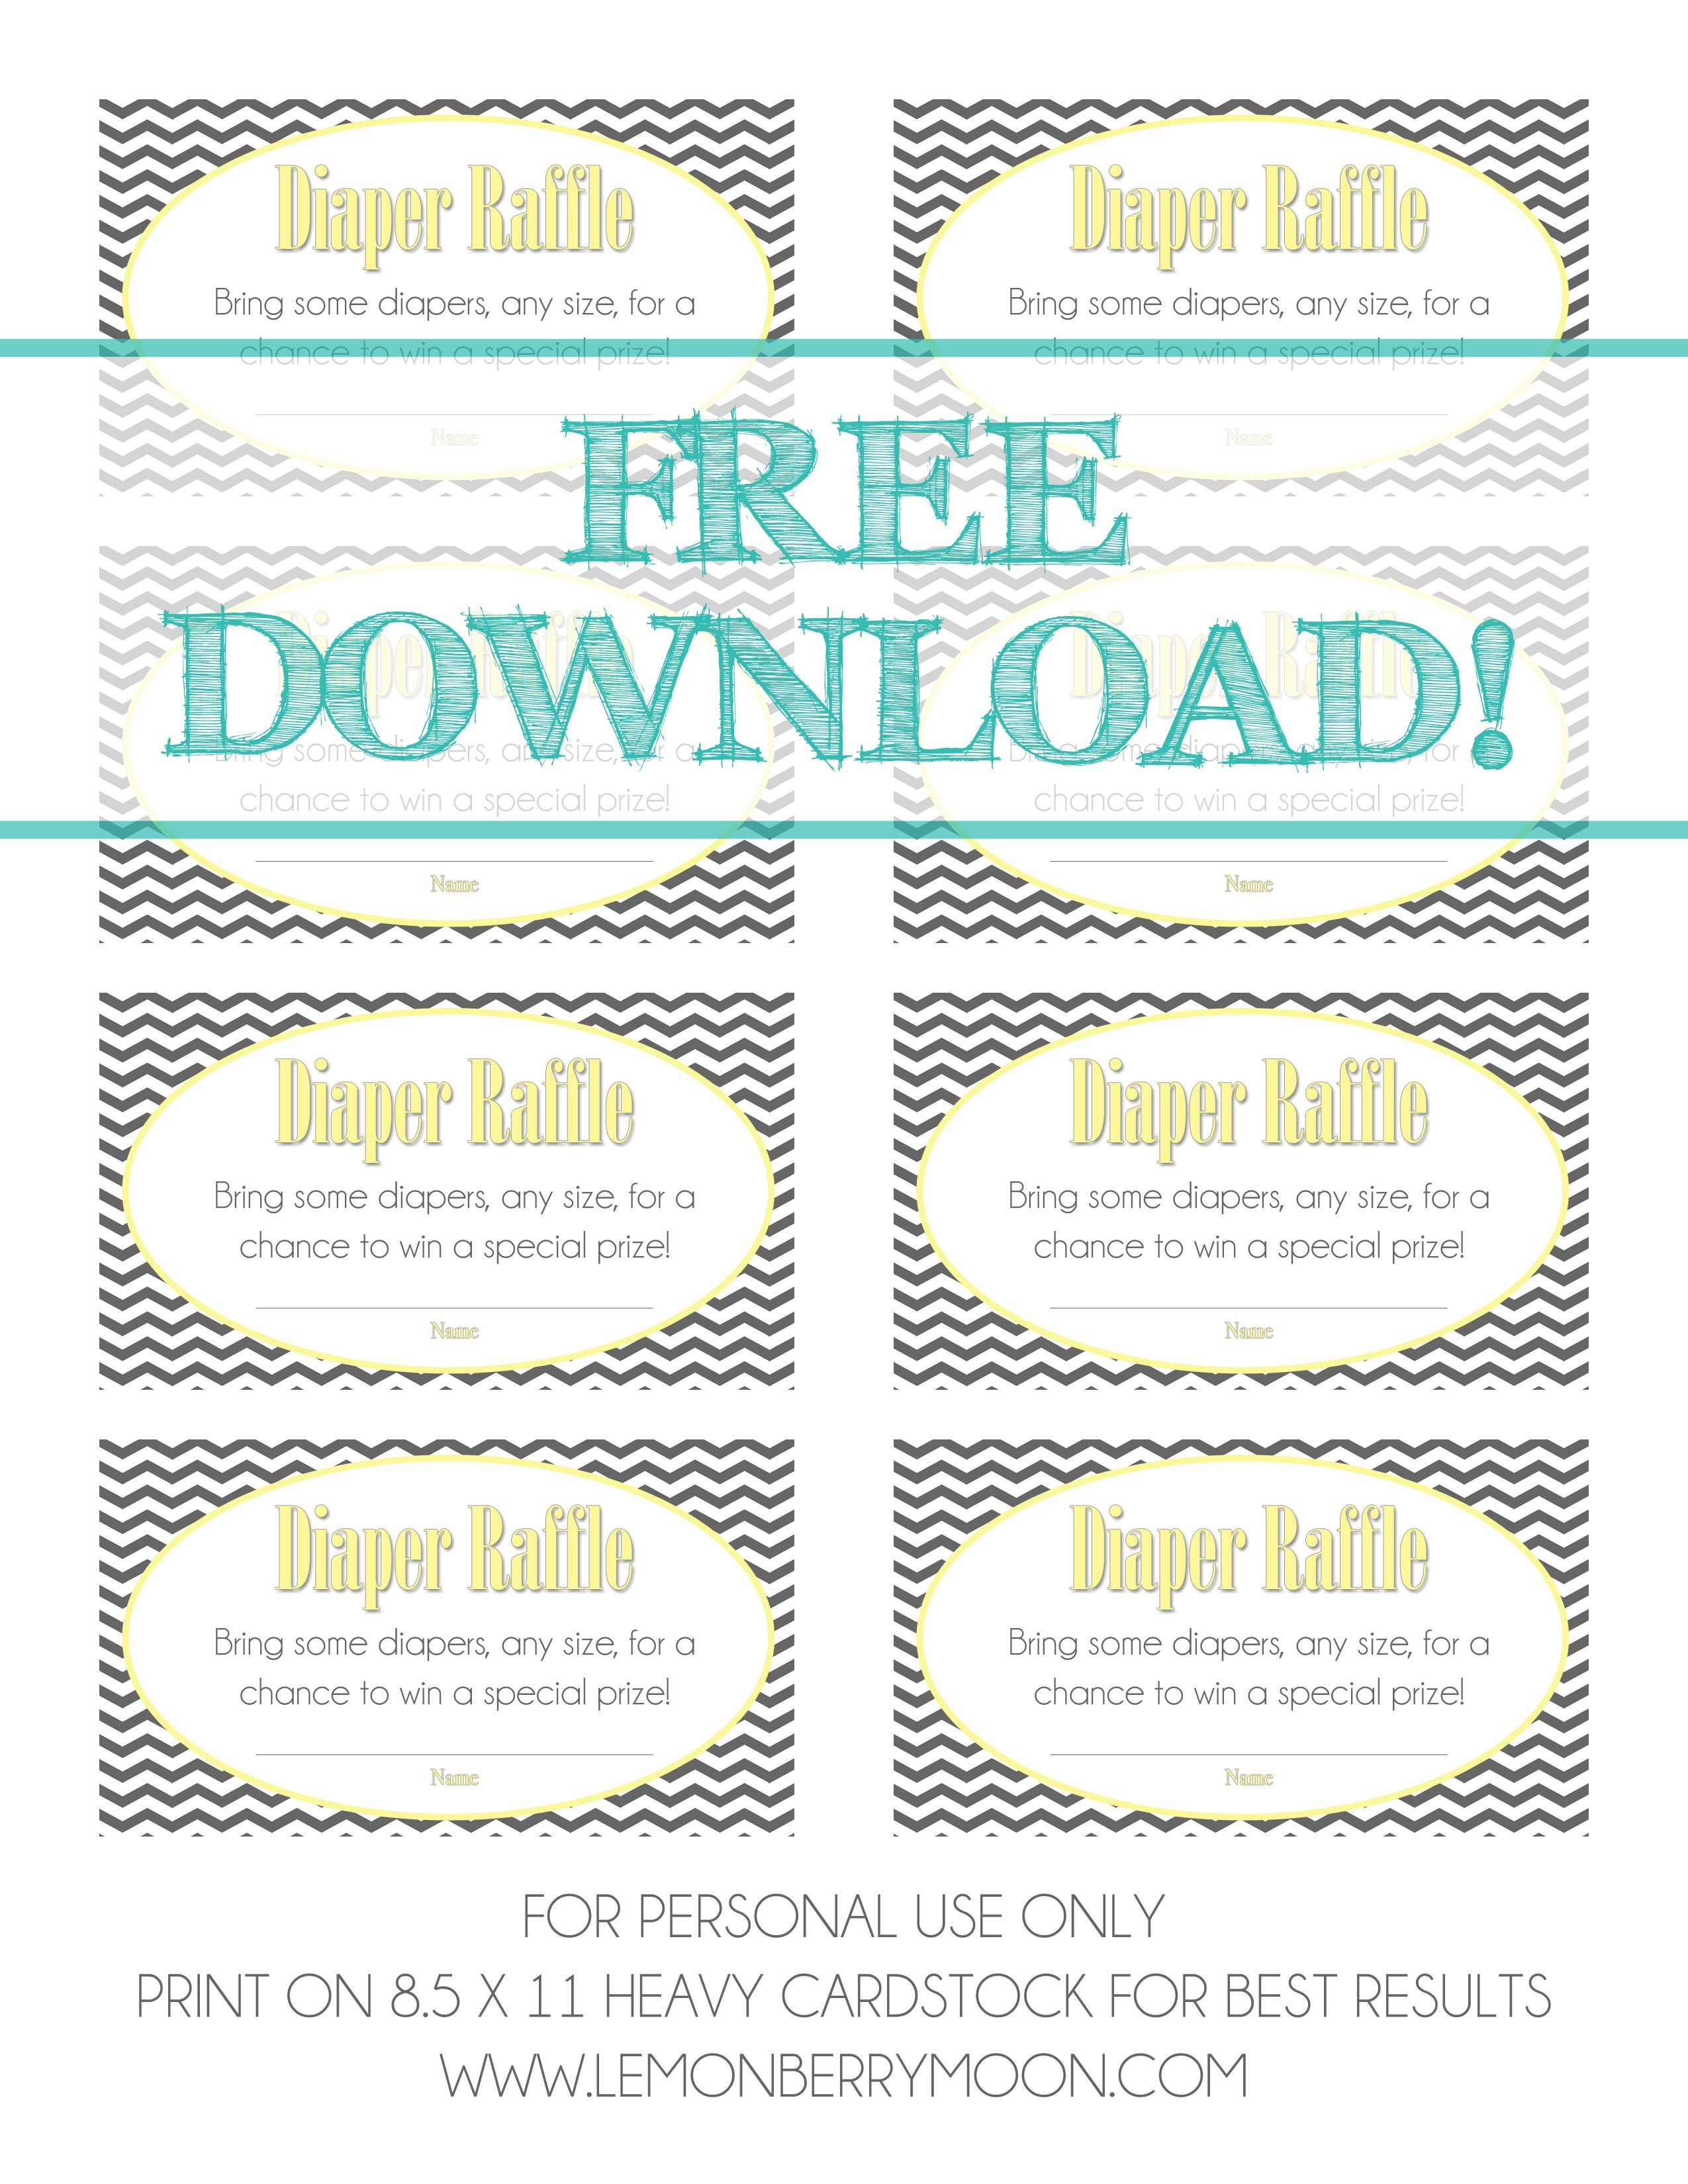 Free Download - Baby Diaper Raffle Template | Baby Boy Shower | Baby - Free Printable Diaper Raffle Ticket Template